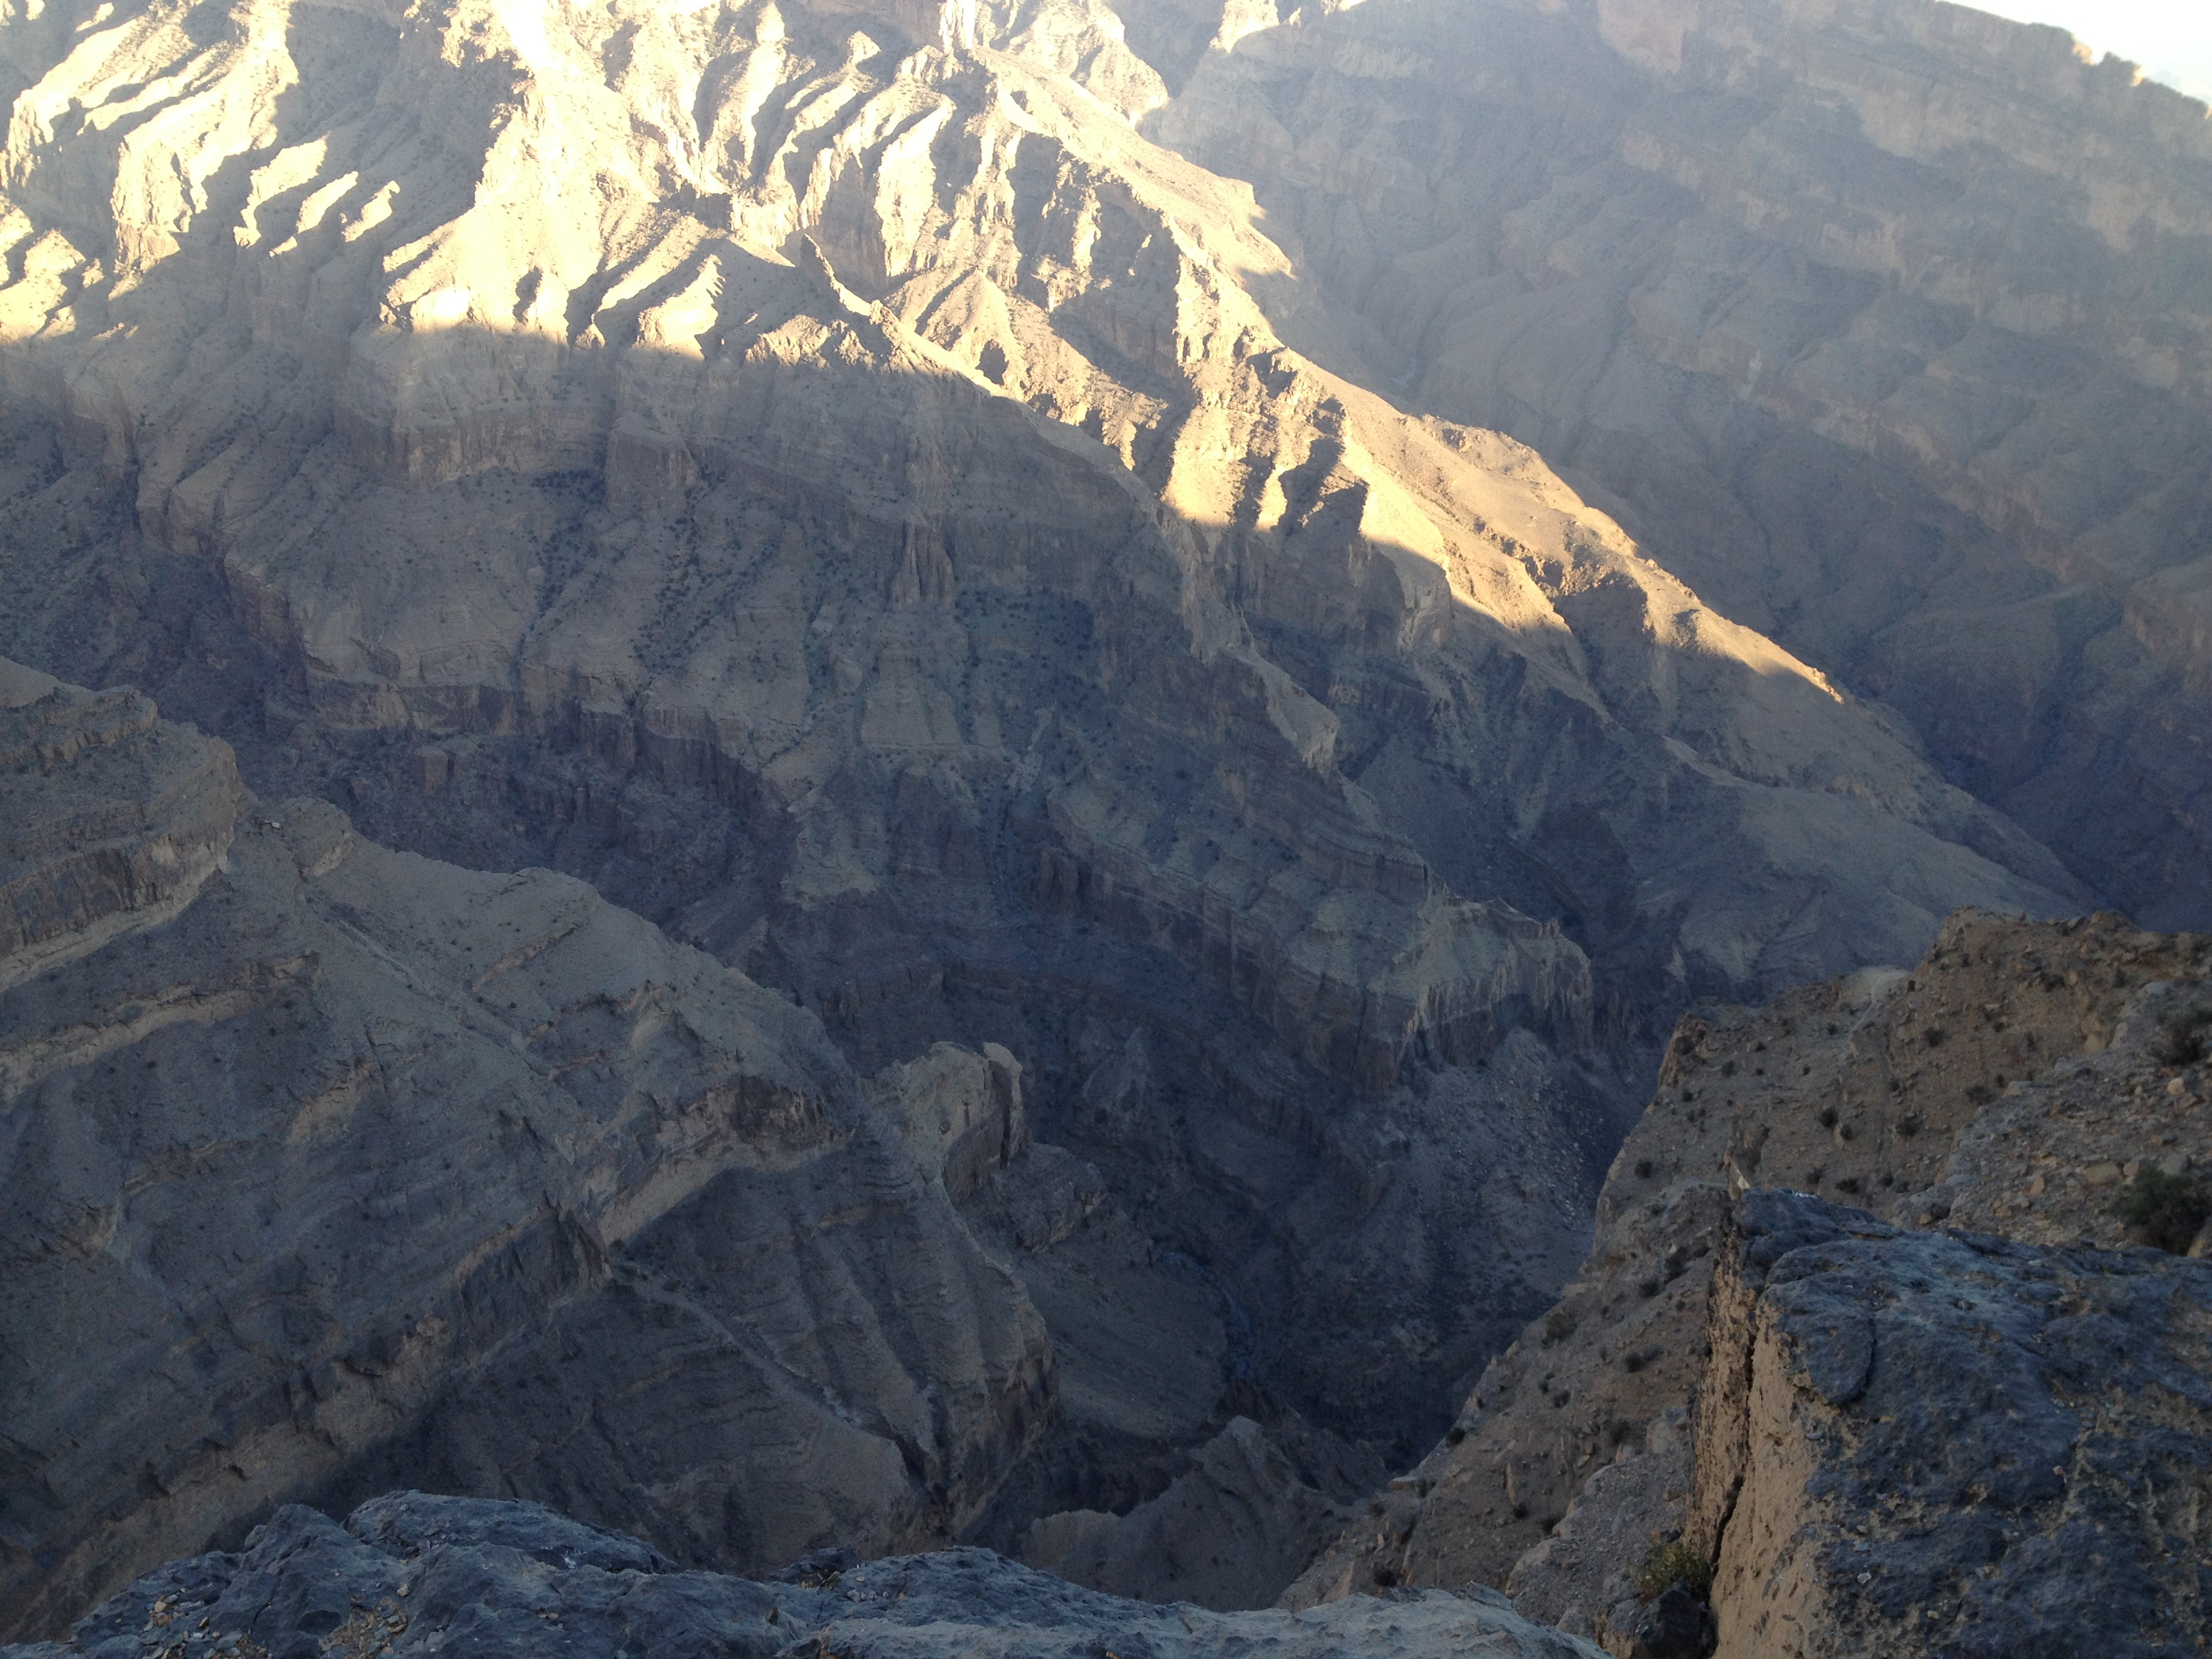 Oman's grand canyon